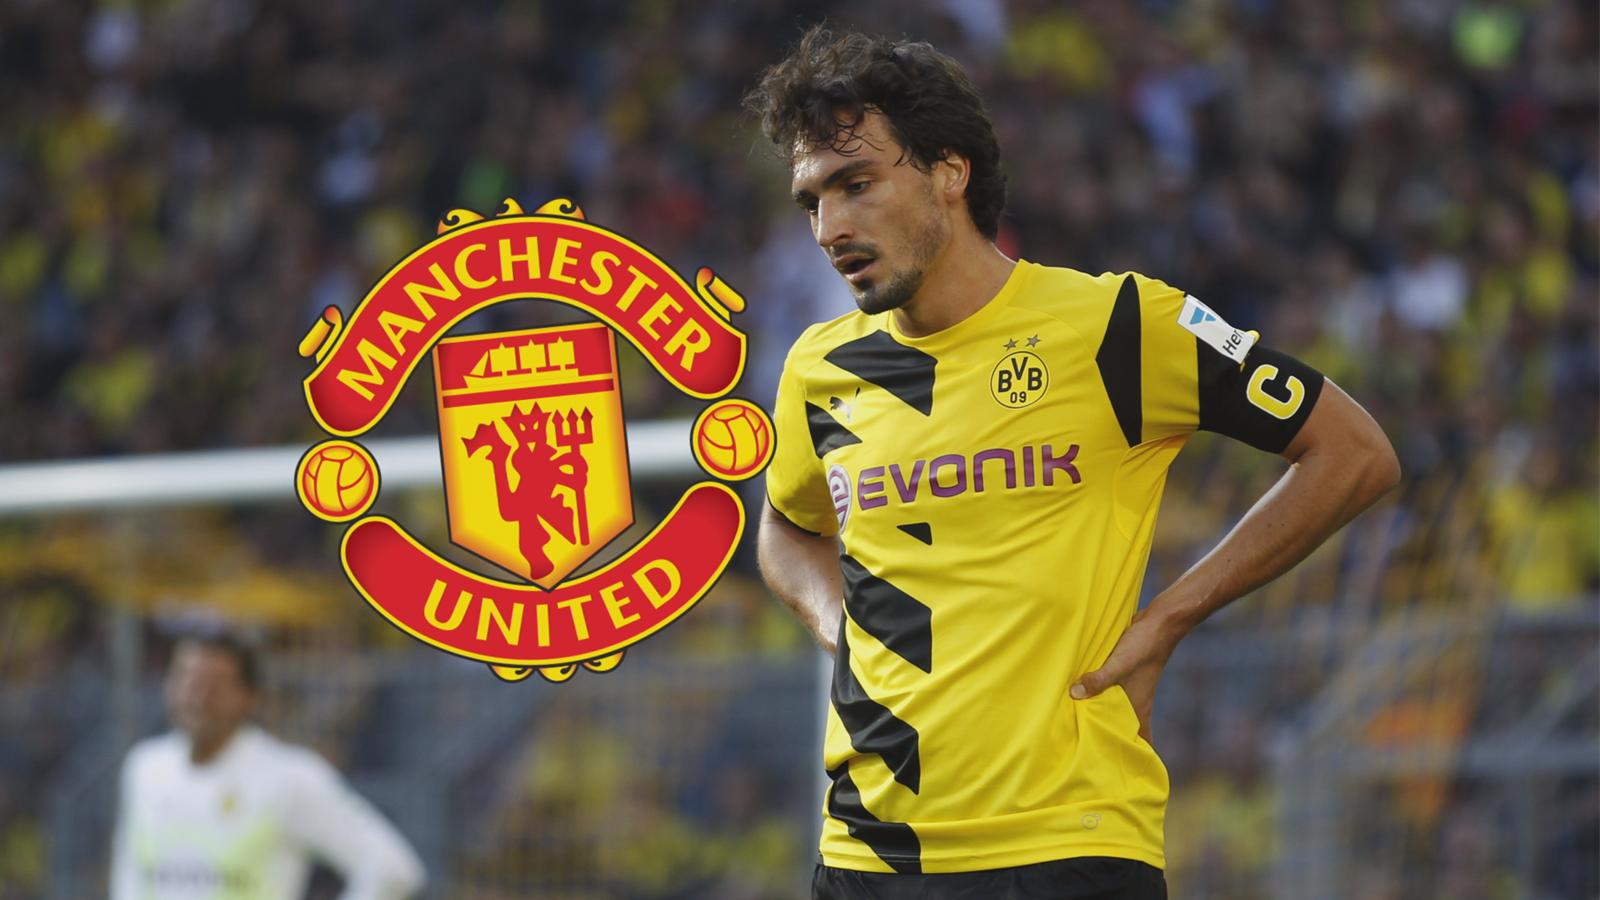 Euro Papers: Mats Hummels edges closer to Manchester United move